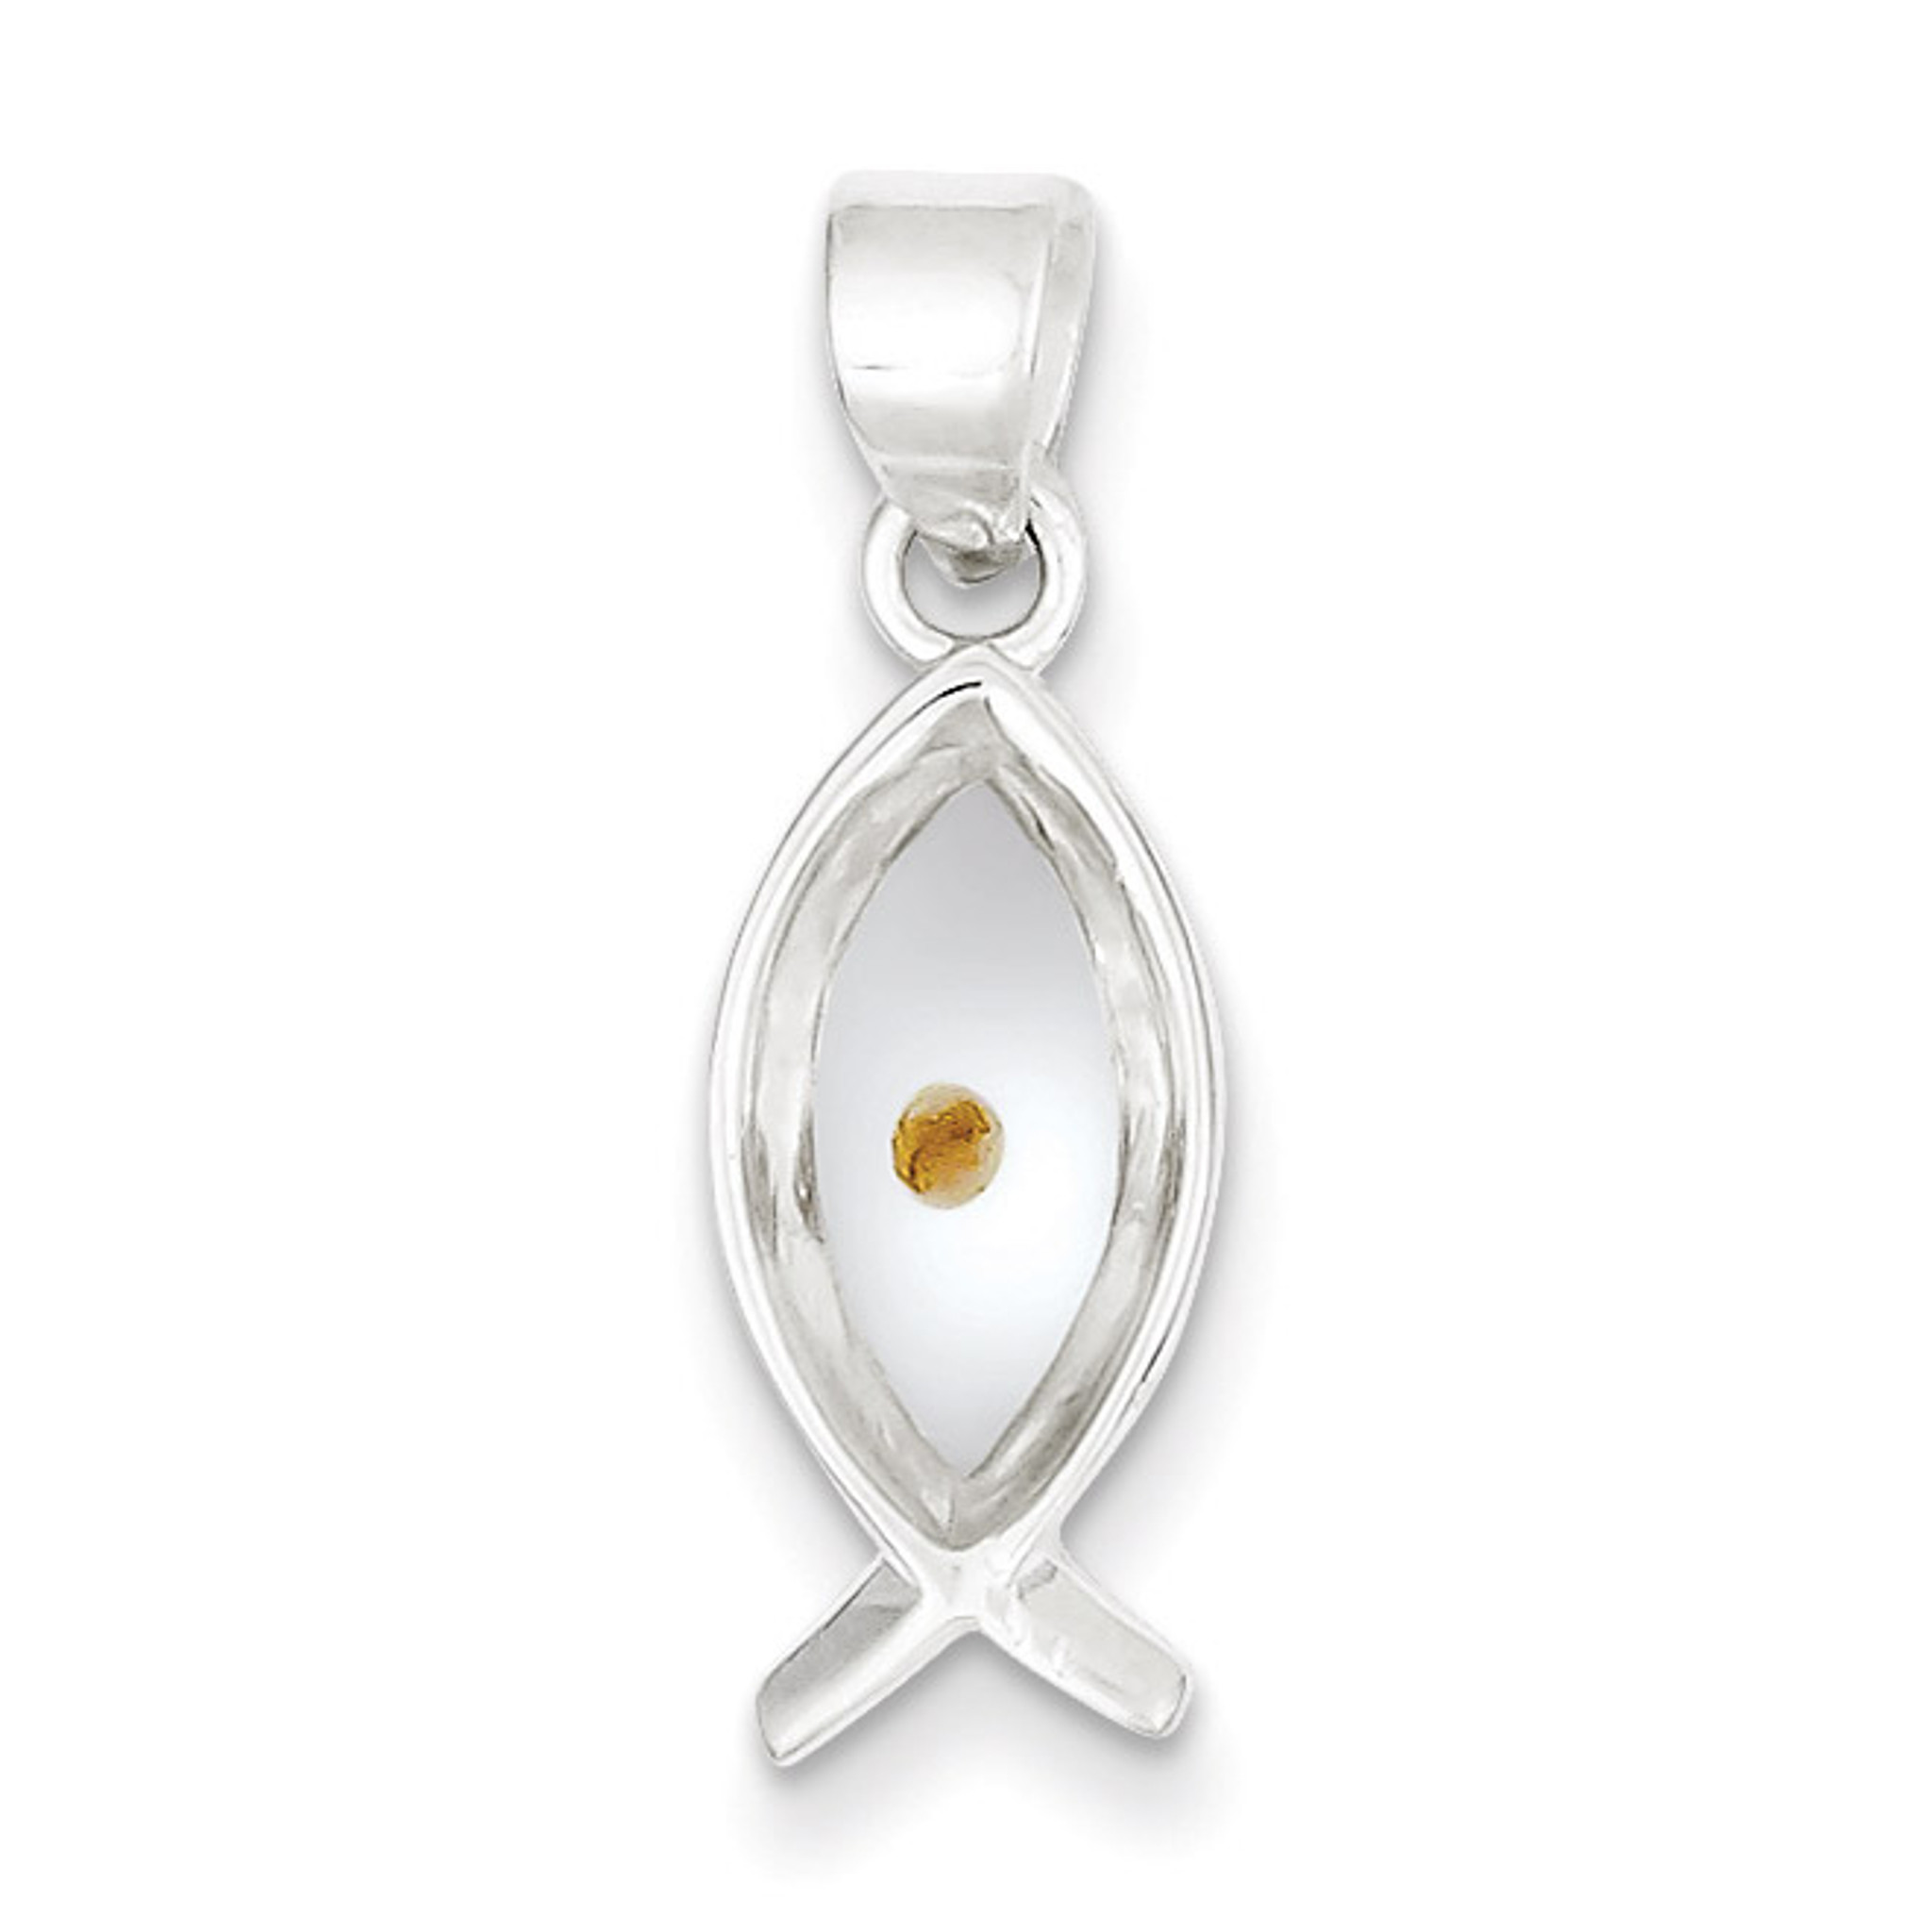 Details about  /.925 Sterling Silver Enameled with Mustard Seed Ichthus Fish Charm Pendant